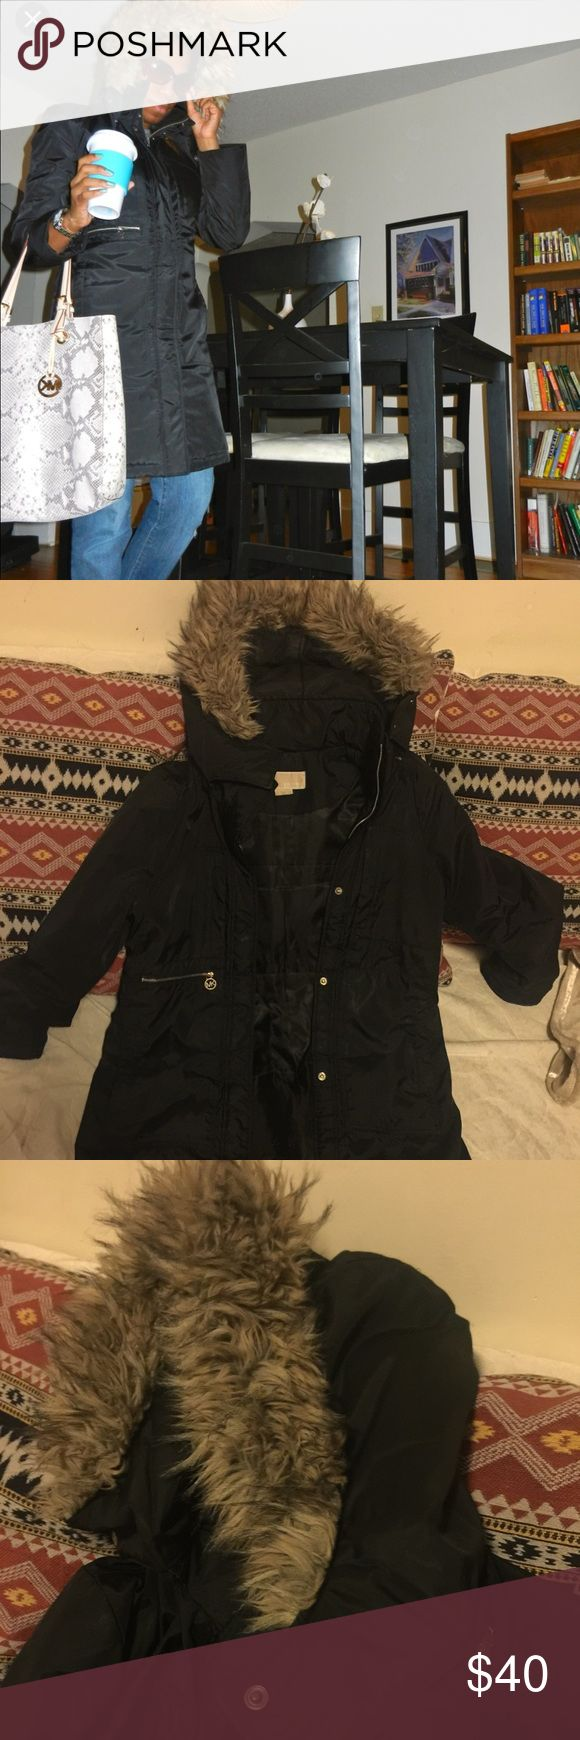 "Michael Kors puffer coat If you are looking for a warm stylist not quilted puffer coat, you have found one. I had this coat for about 3 years but I alternate with my other coats so there is still a lot of life left and is in great condition. The hood is detachable. I am 5'6"" and it reaches just above my knees. Michael Kors Jackets & Coats Puffers"